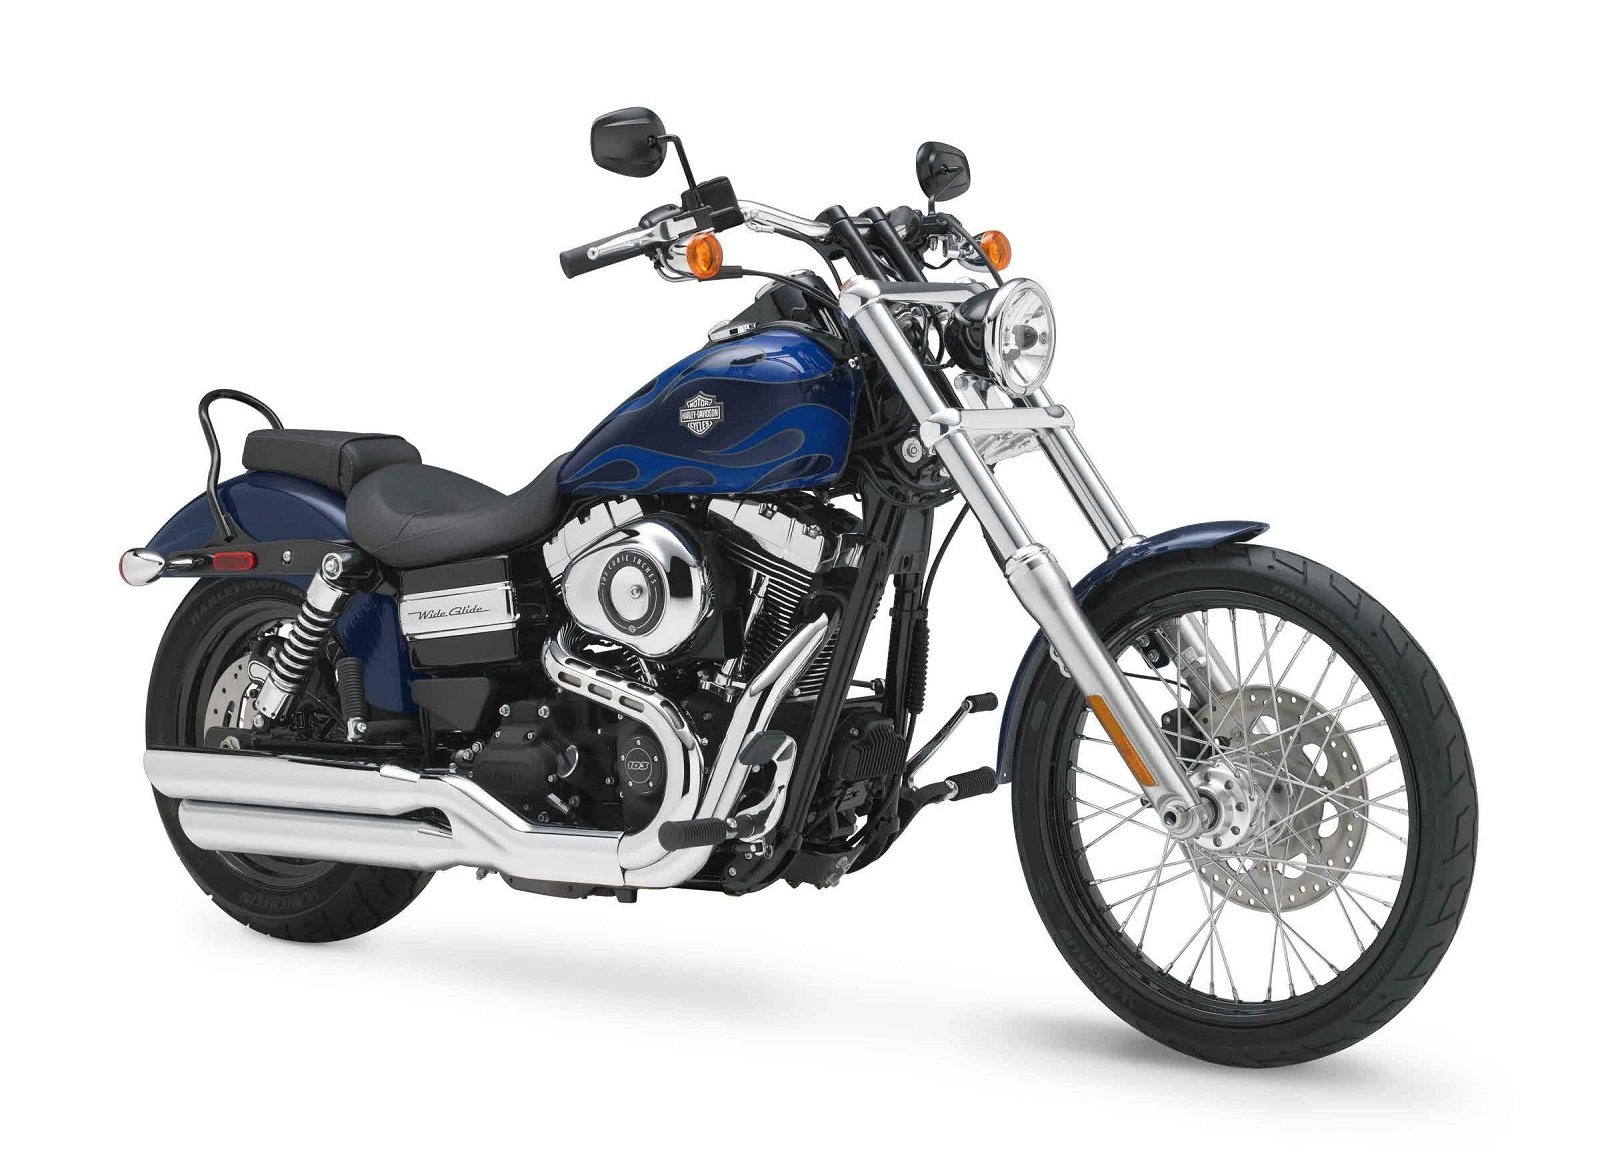 Harley Davidson Dyna Wide Glide Value